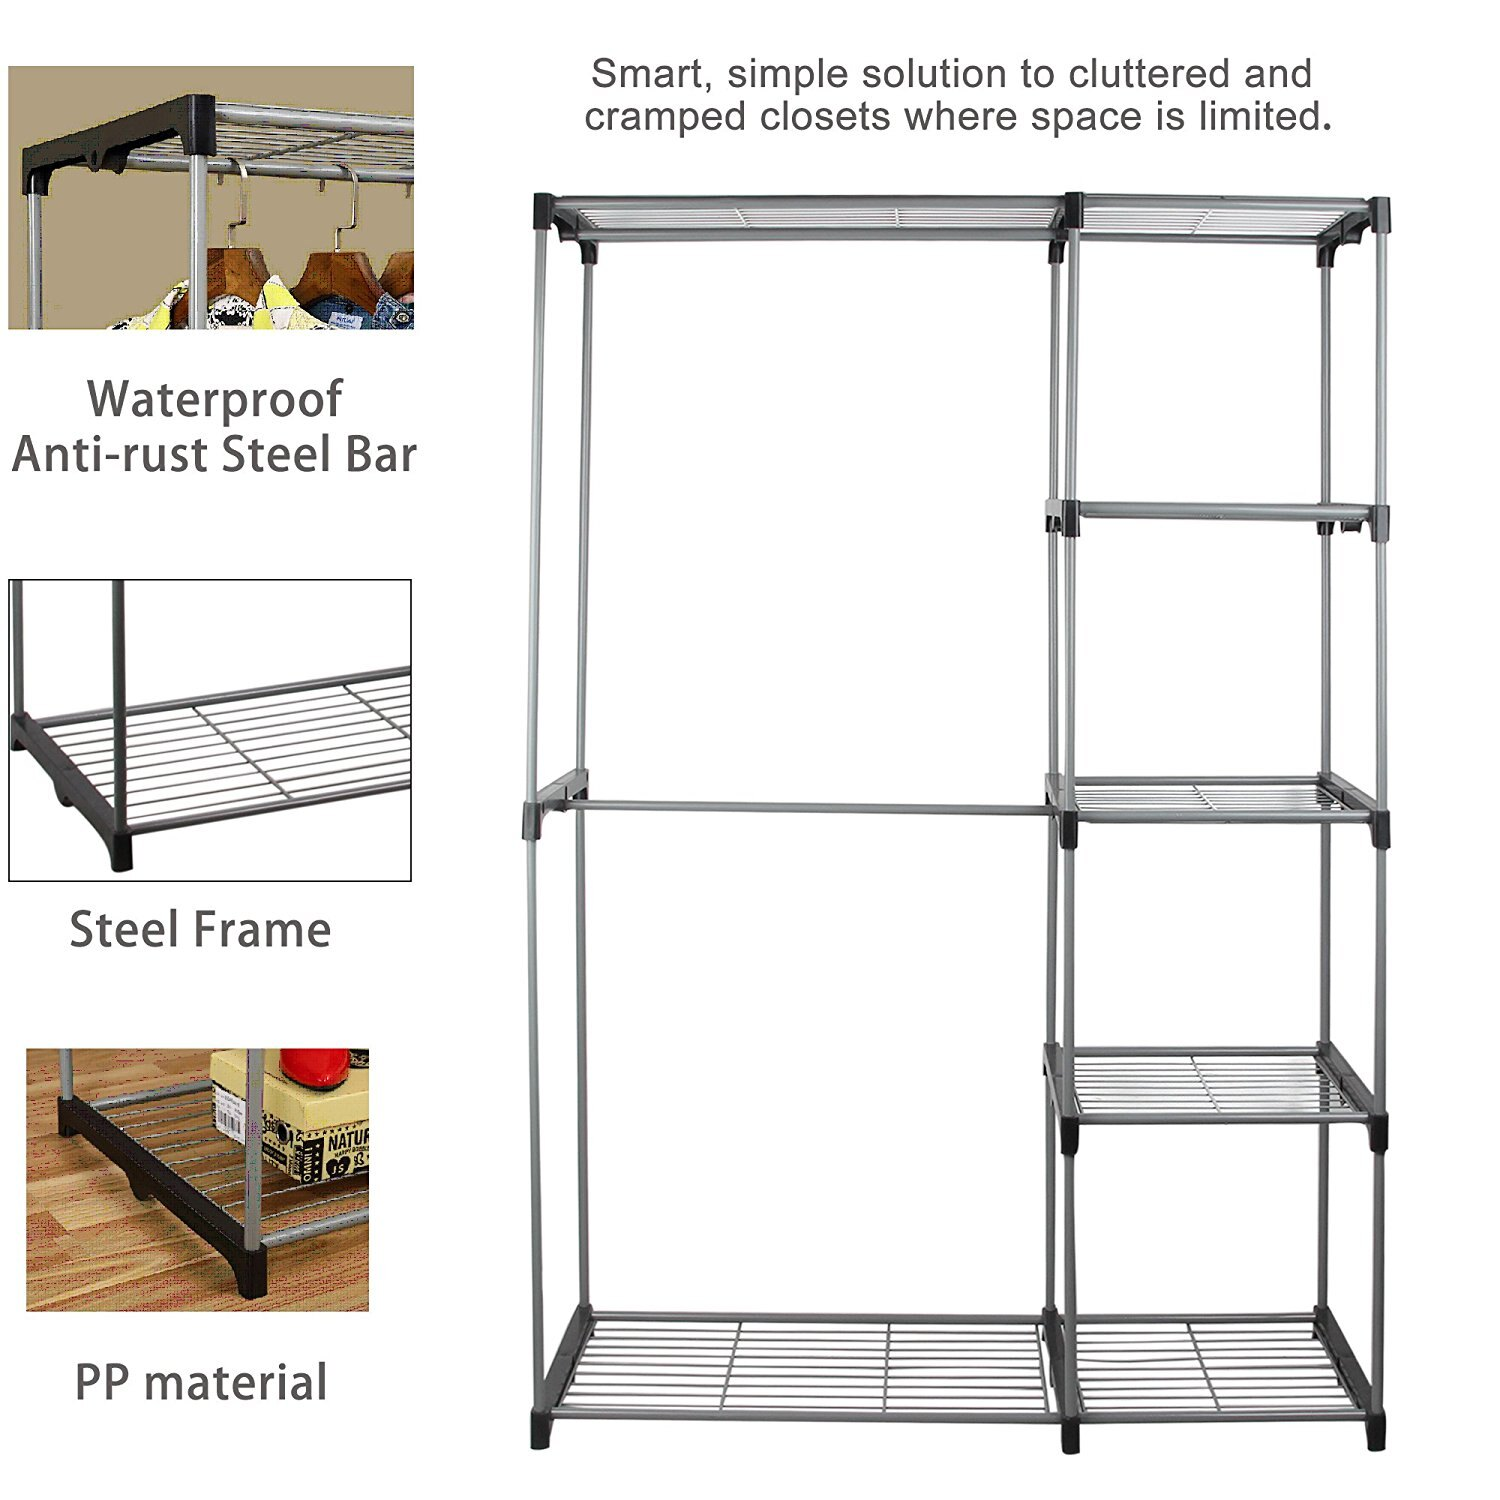 Double Rod Portable Clothes Storage Rack Freestanding Closet Wardrobe with Steel and Plastic Frame CL68 2